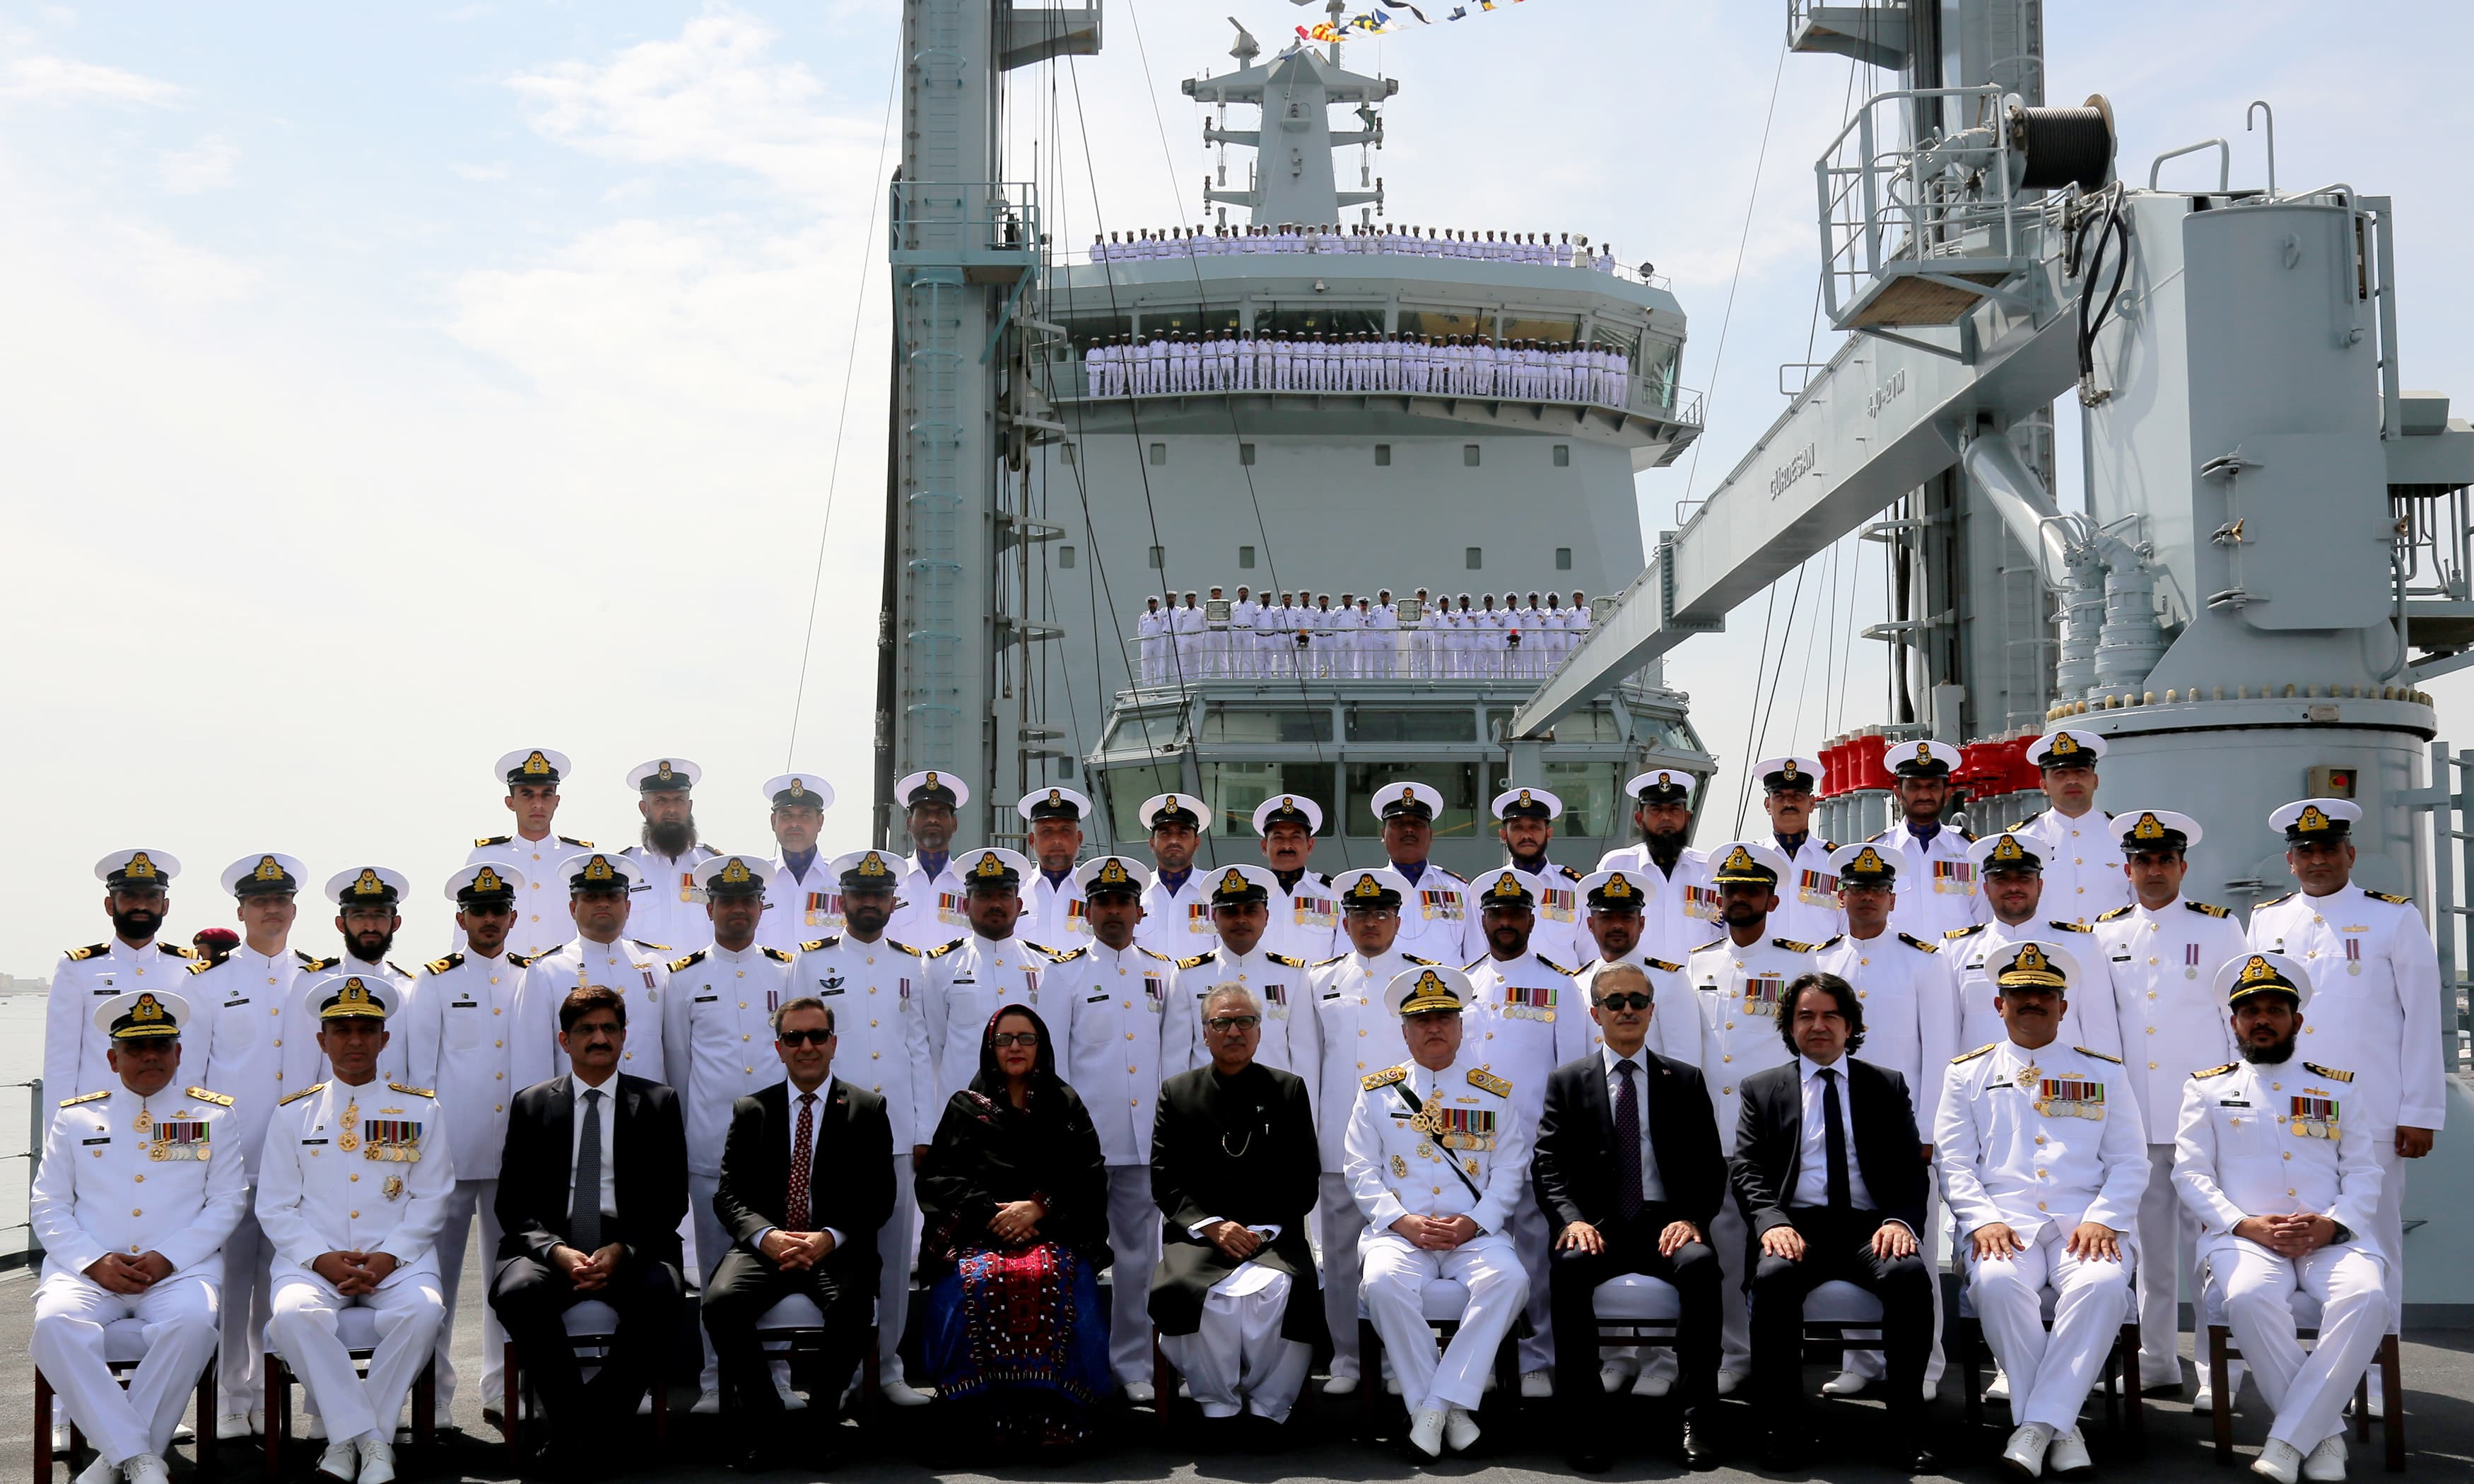 The ceremony was attended by President Alvi, Sindh Chief Minister Murad Ali Shah, Minister for Defence Production Zubeida Jalal, Naval Chief Admiral Z M Abbasi and senior naval officials. —Navy PR